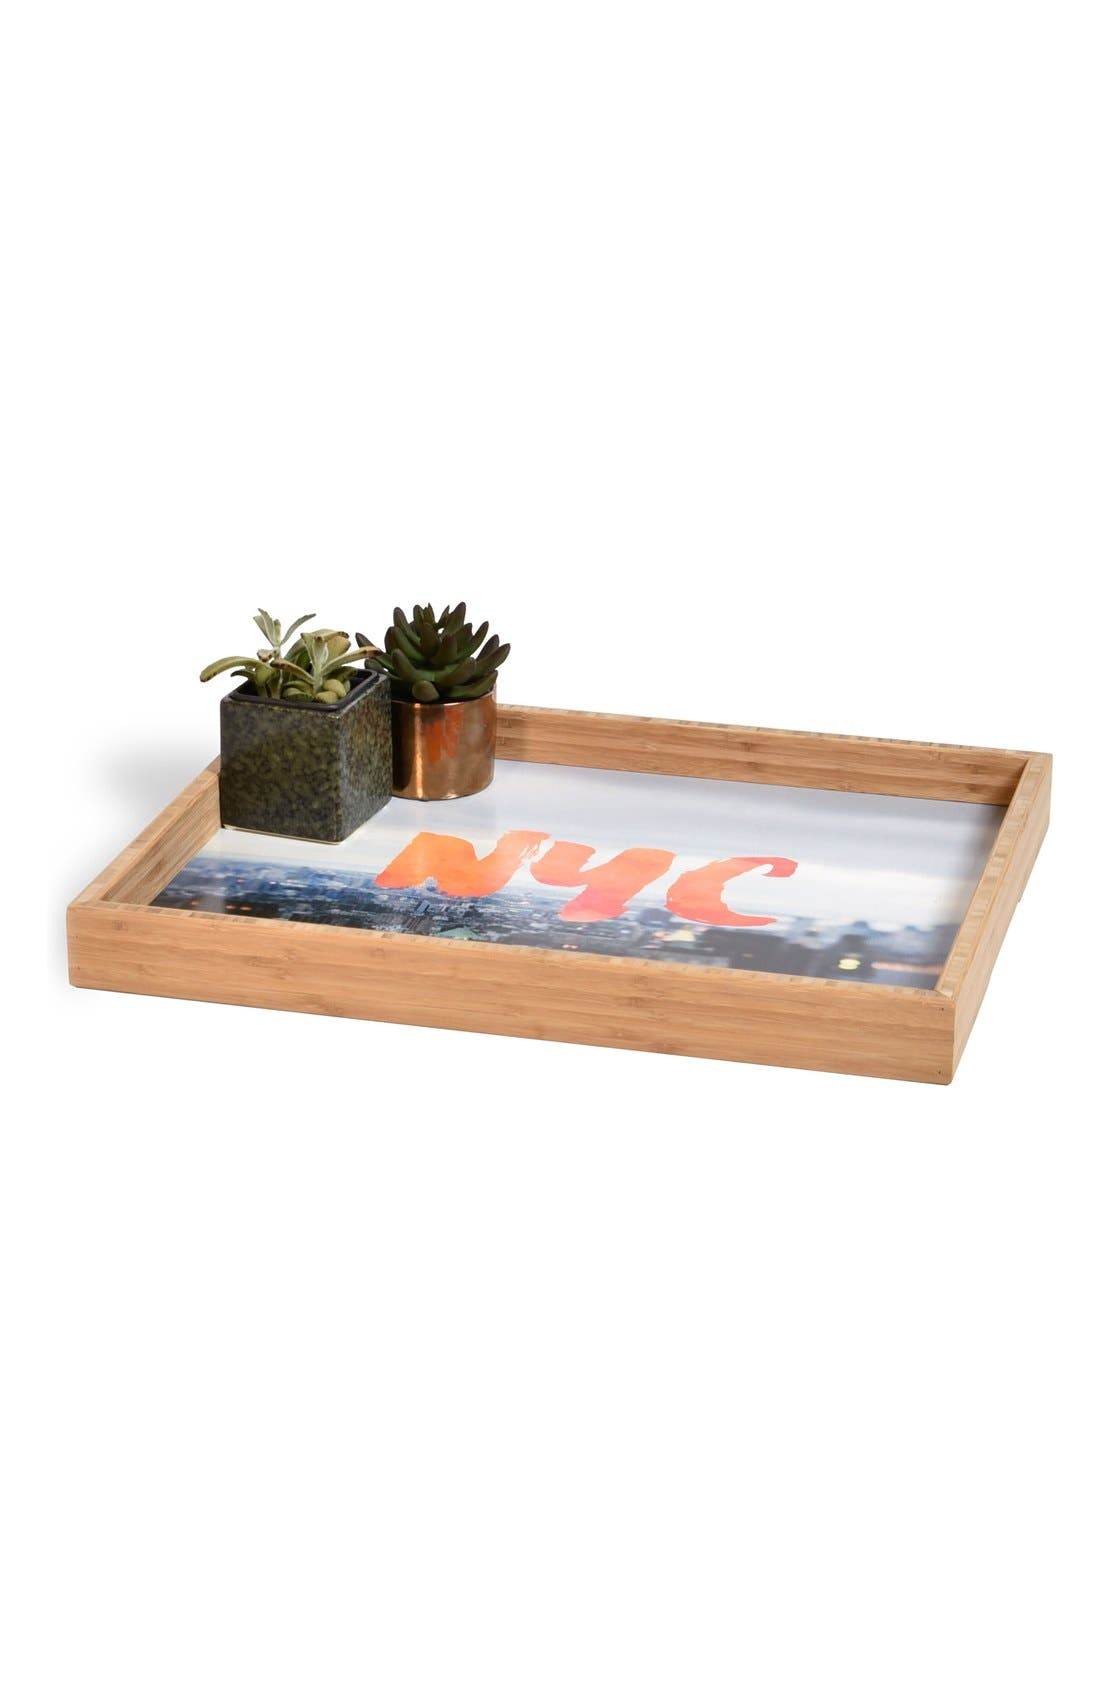 'NYC Skyline' Decorative Serving Tray,                             Alternate thumbnail 3, color,                             800